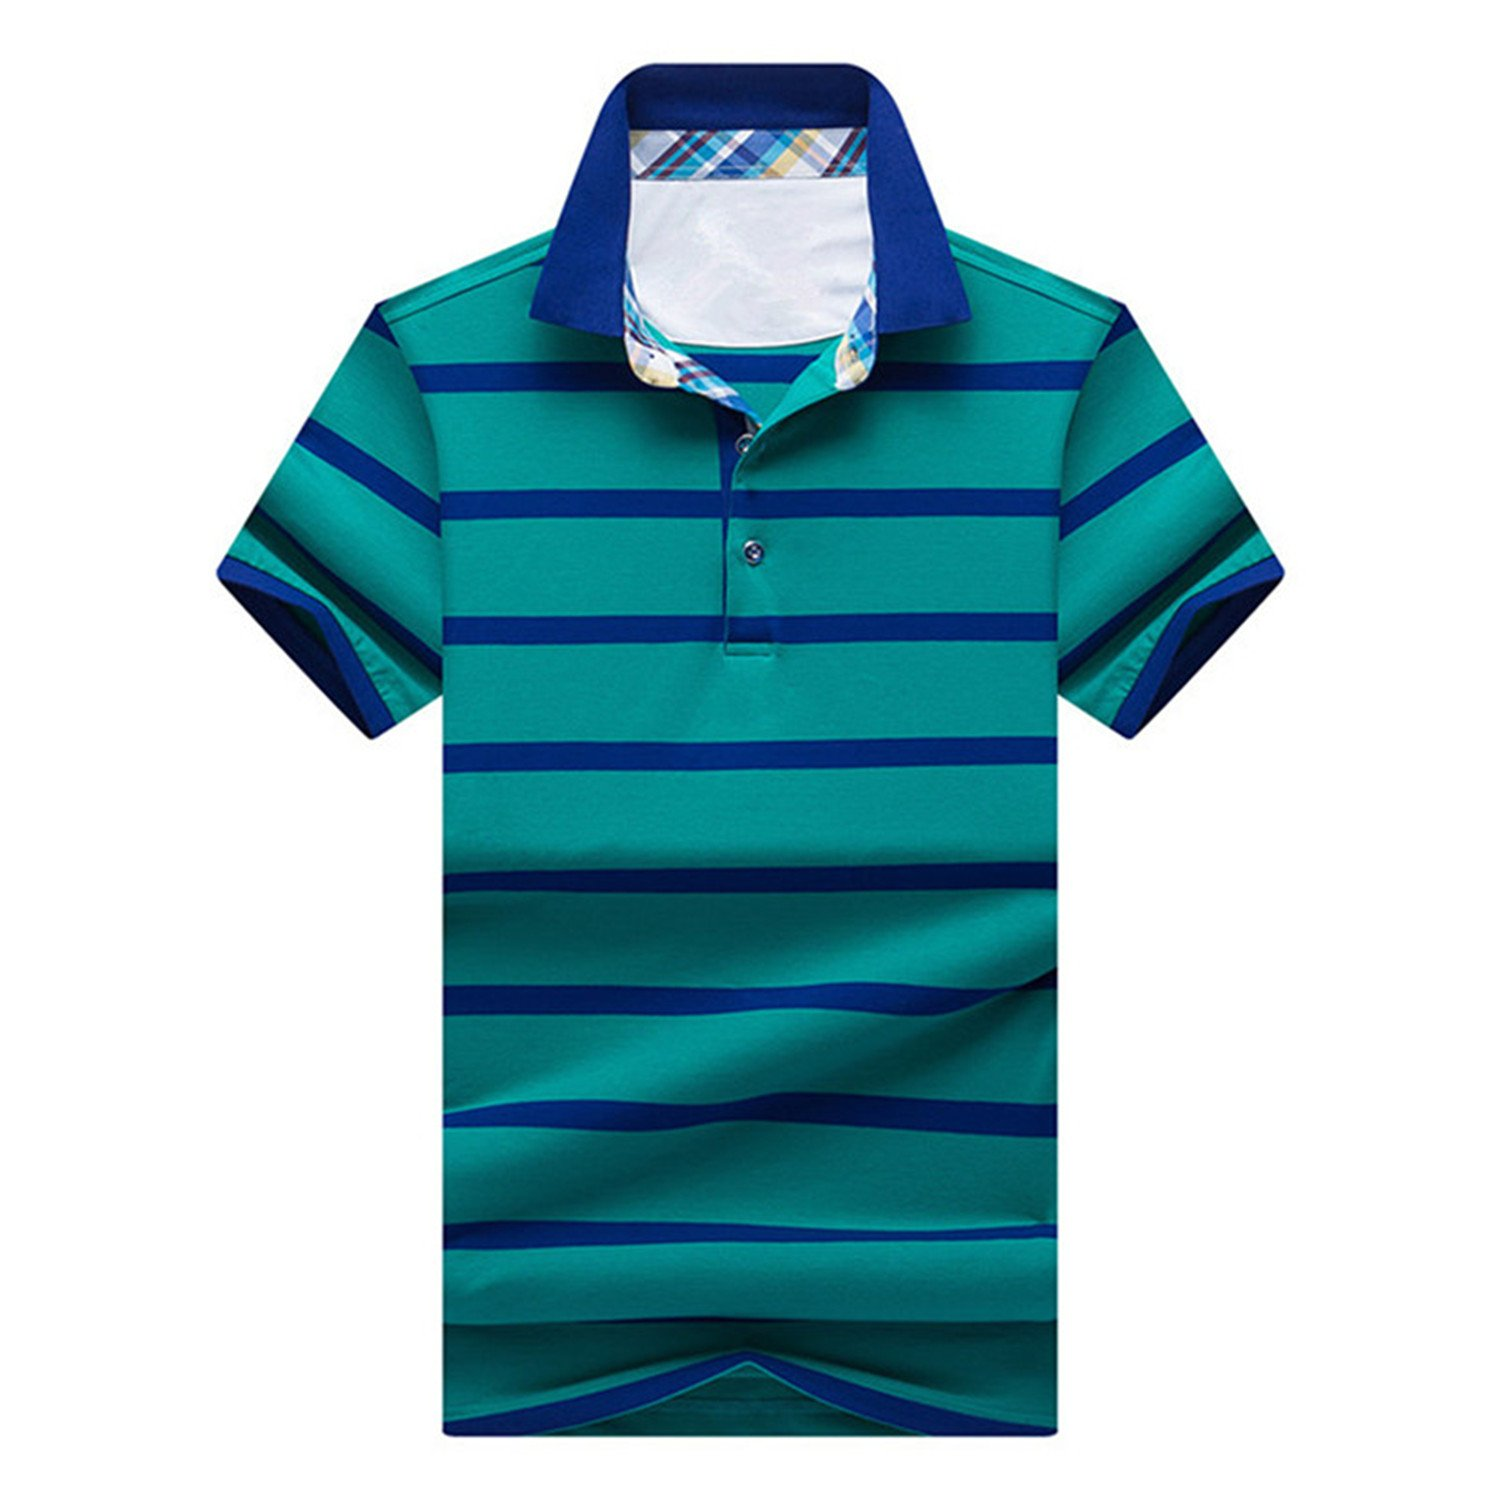 Tyler Morrison Spring Summer New Mens Short Sleeve Polo Shirt Business Casual Cotton Stripe Polo Shirt Tops